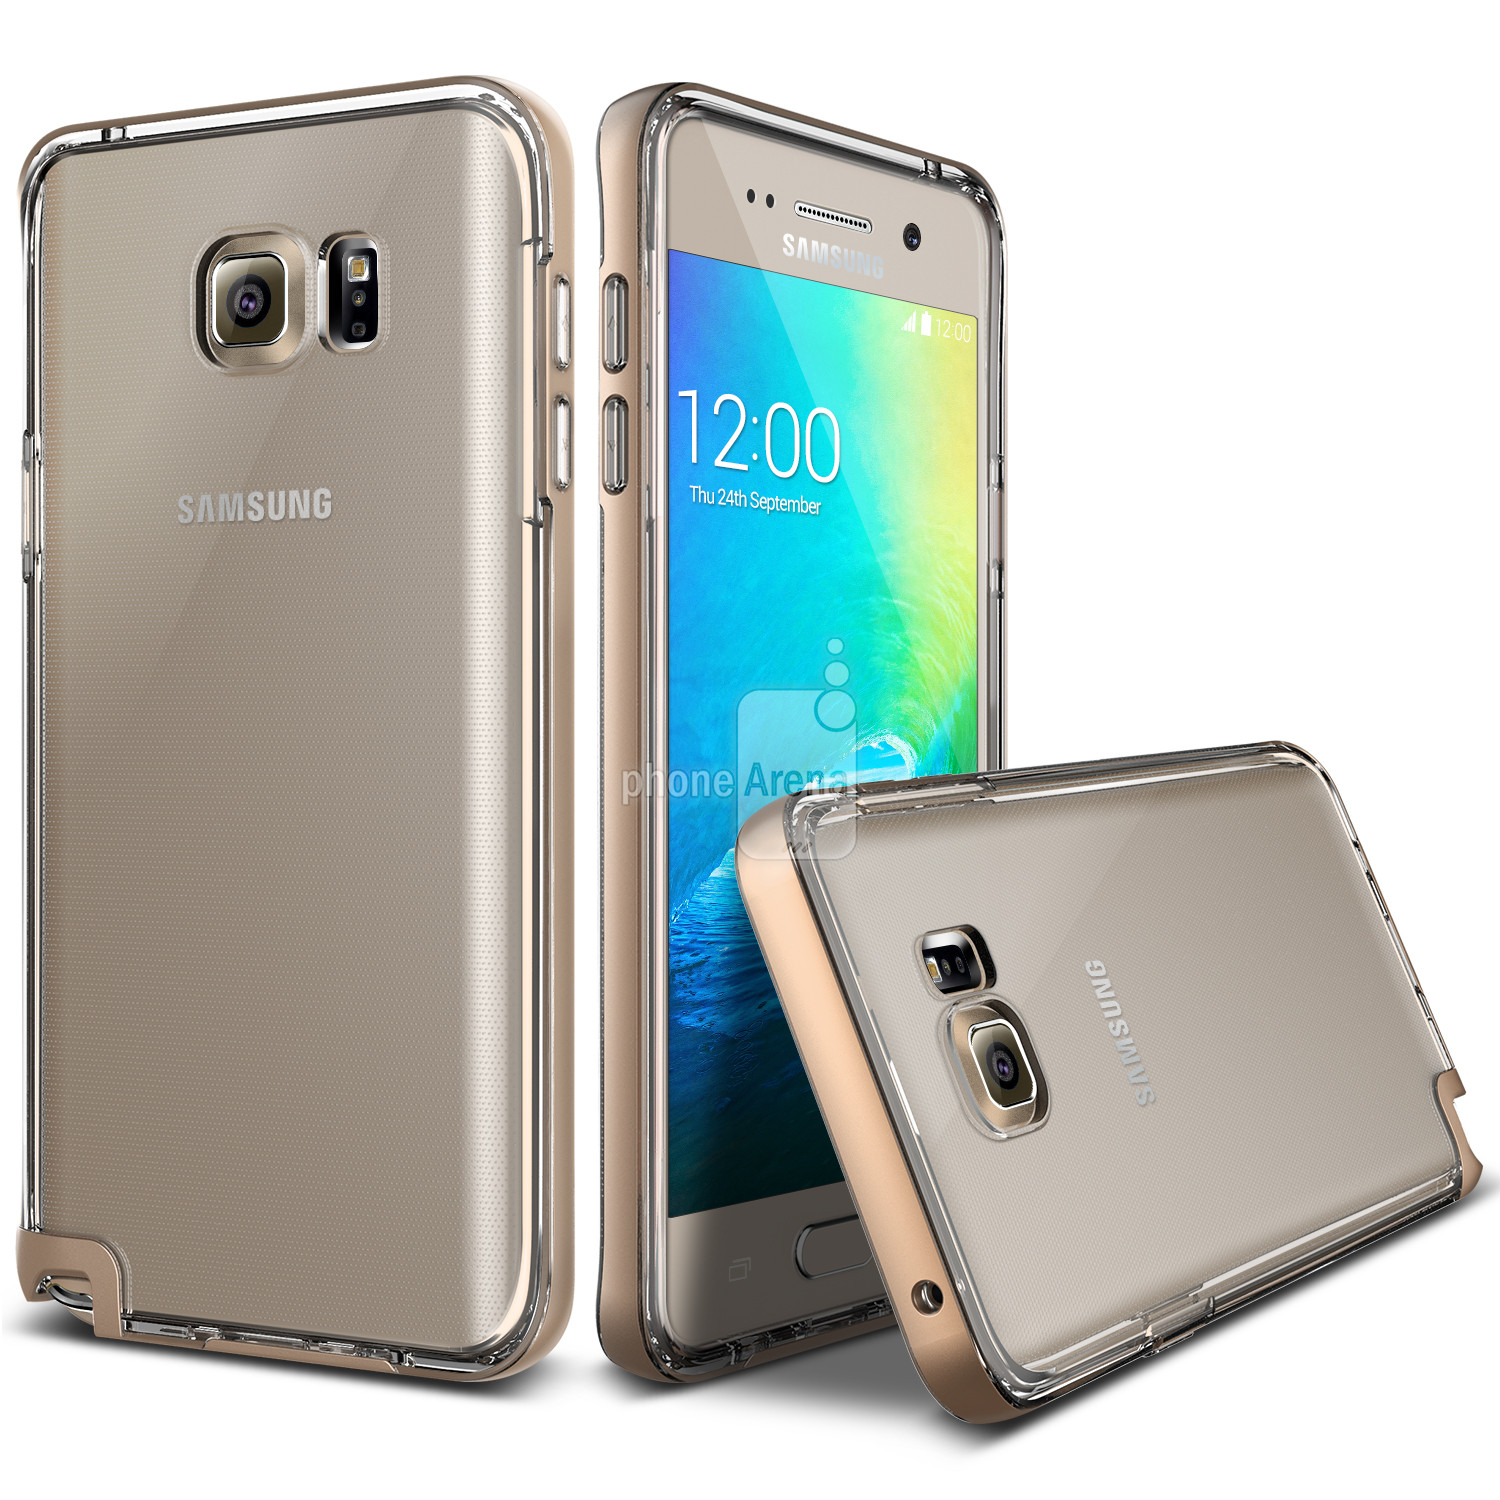 Samsung Galaxy Note 5 Gets Rendered in Impressive Amount ...